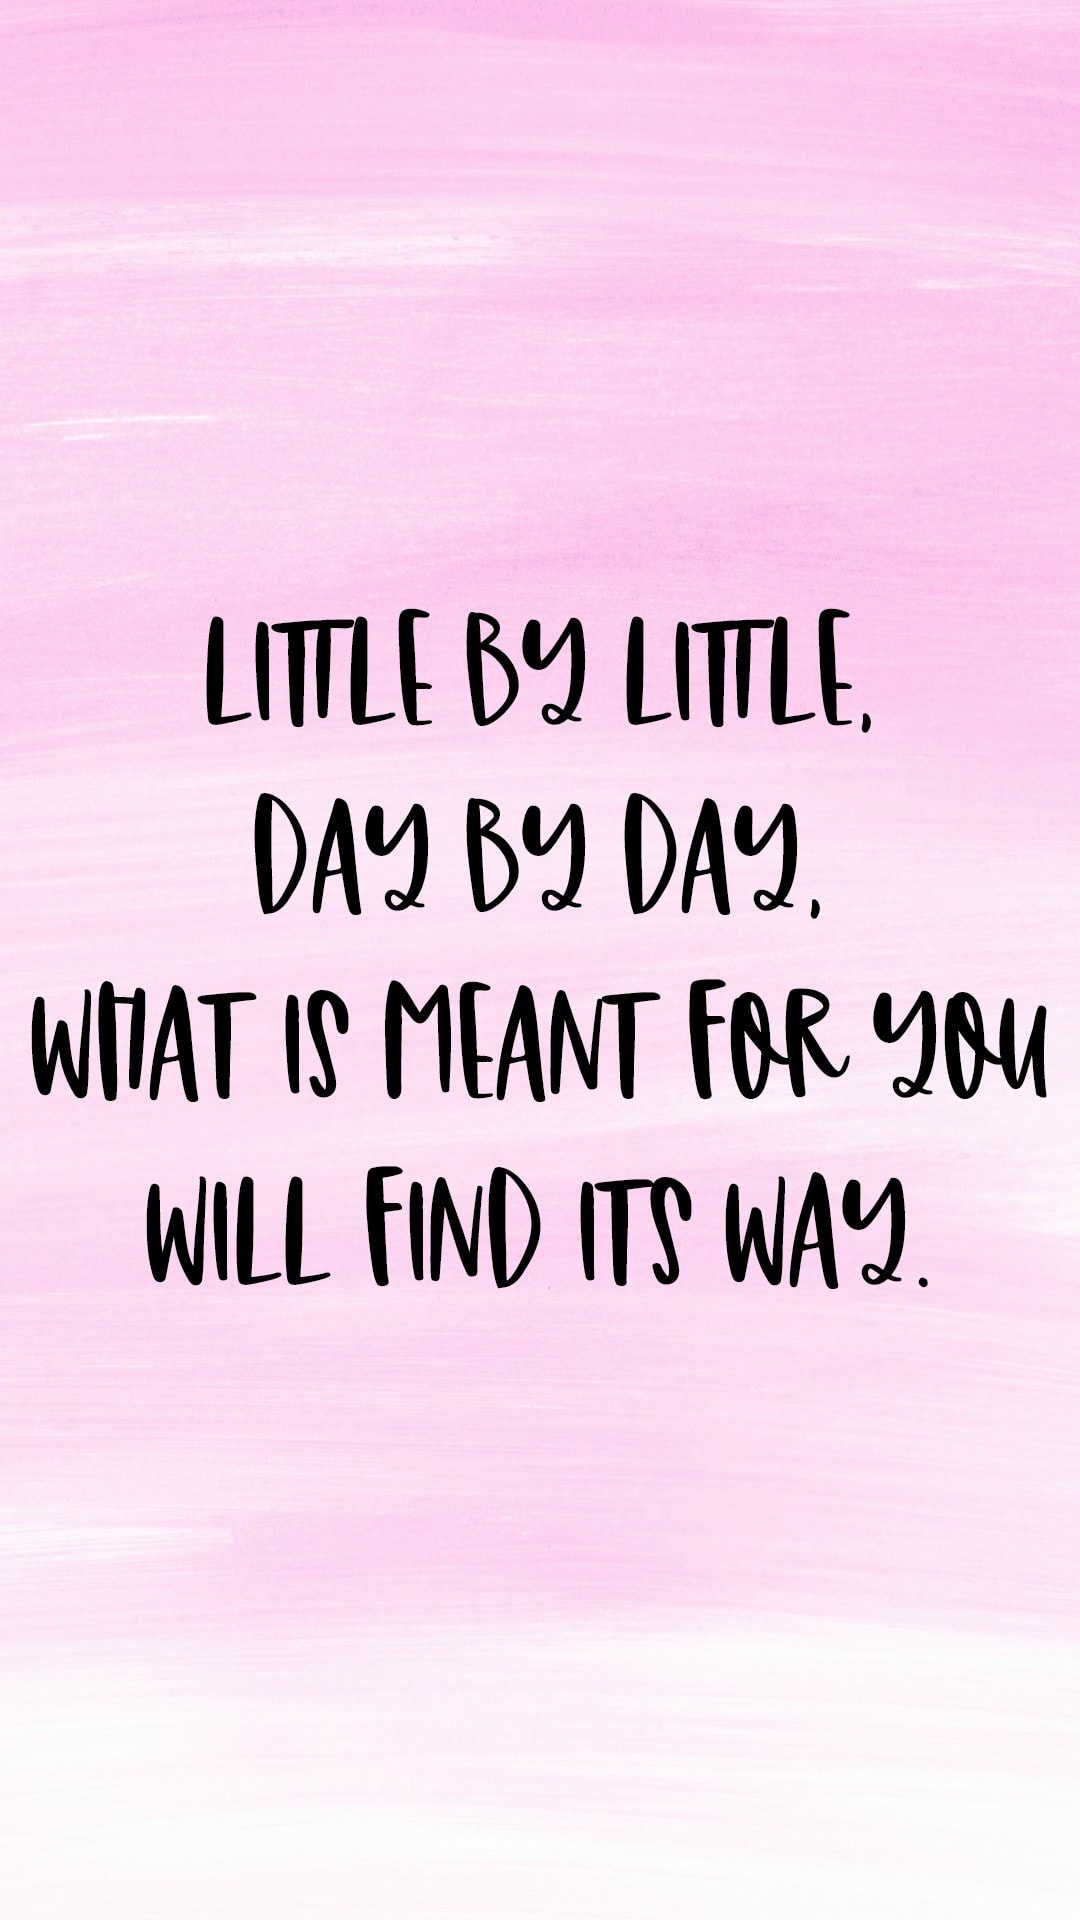 Little by little, day by day what is meant for you will find its way.